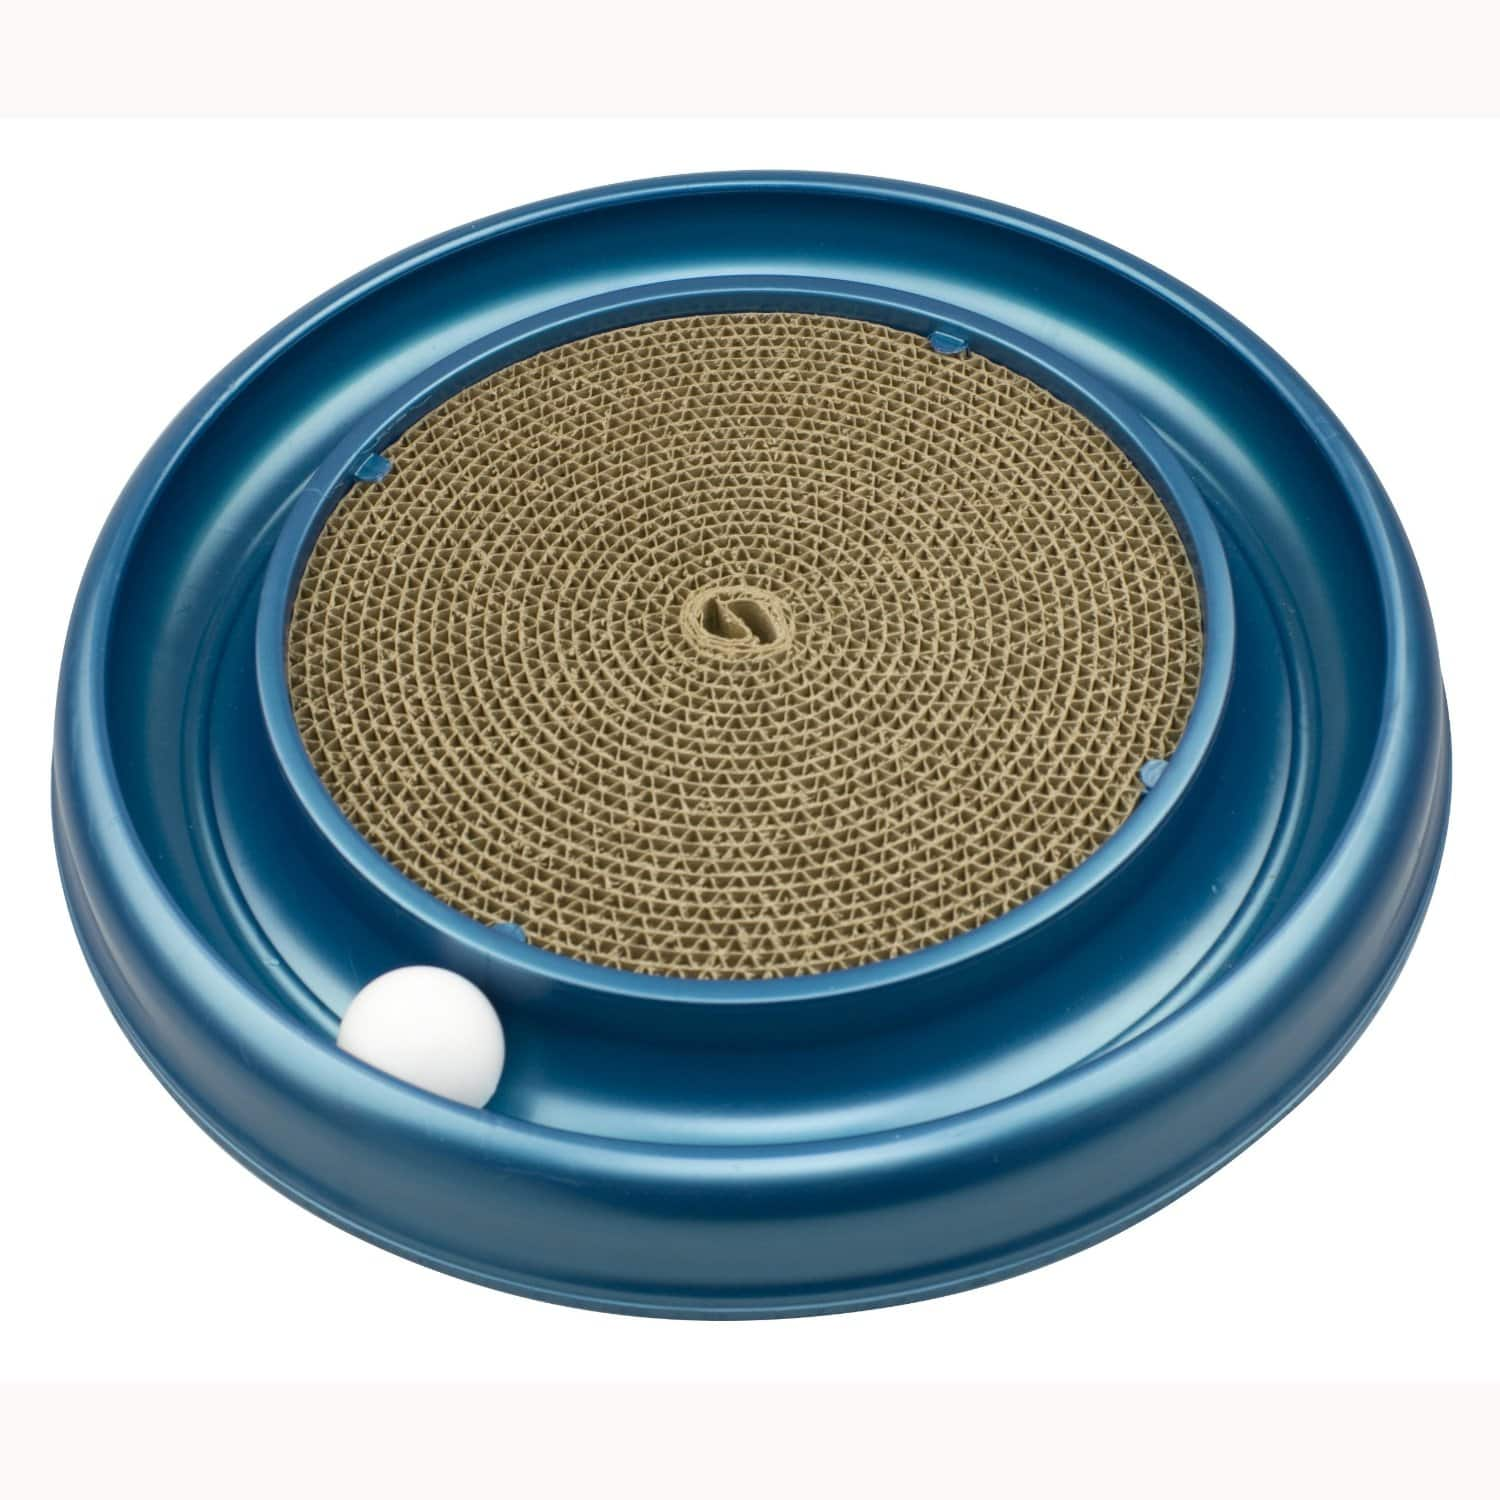 Bergan Turbo Scratcher Cat Toy $6.39 at Amazon